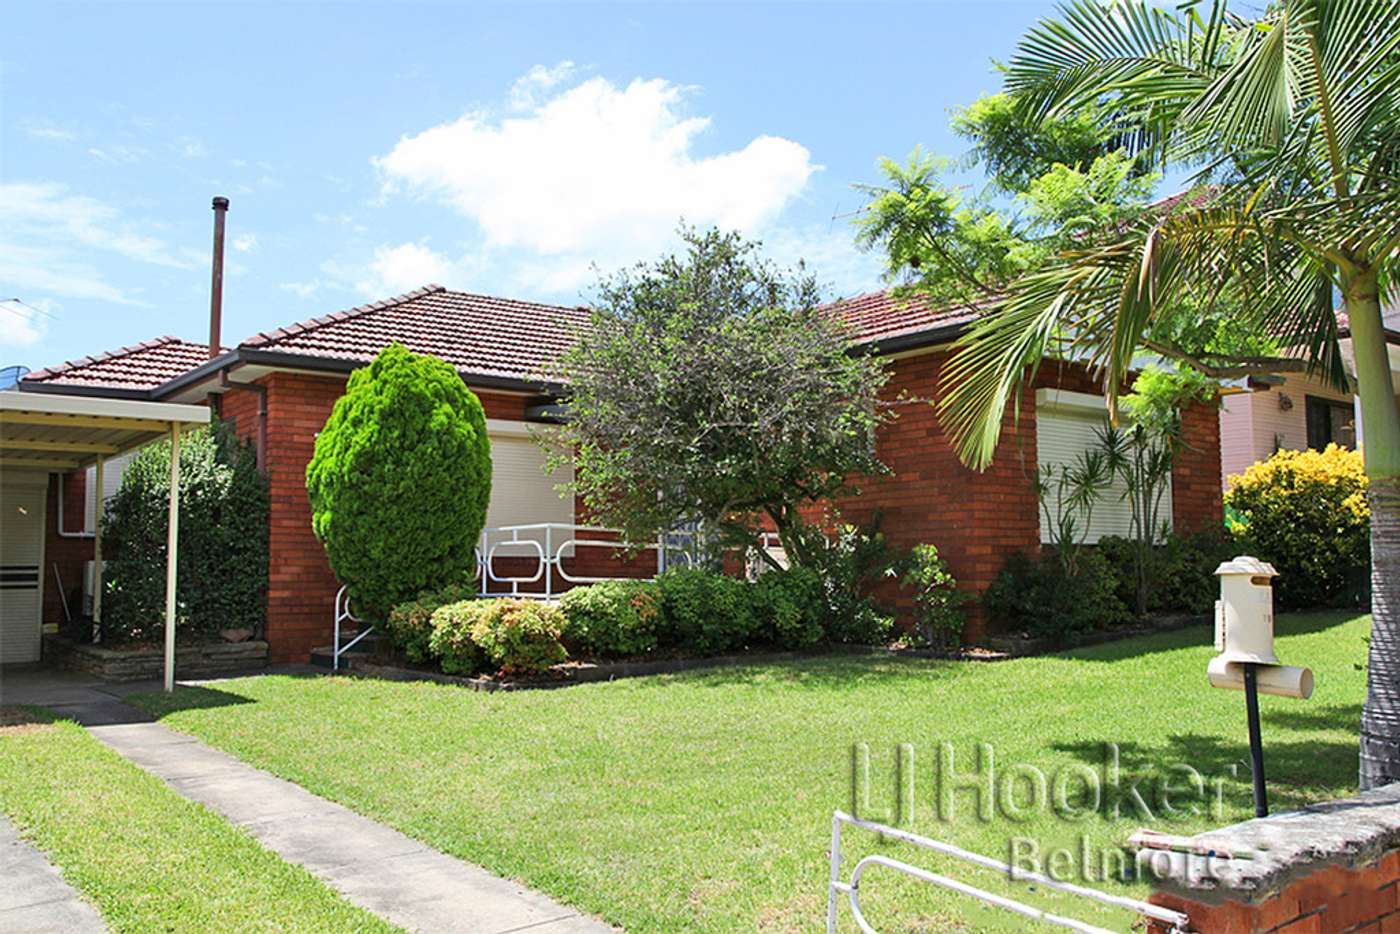 Main view of Homely house listing, 19 Eleanor Avenue, Belmore NSW 2192